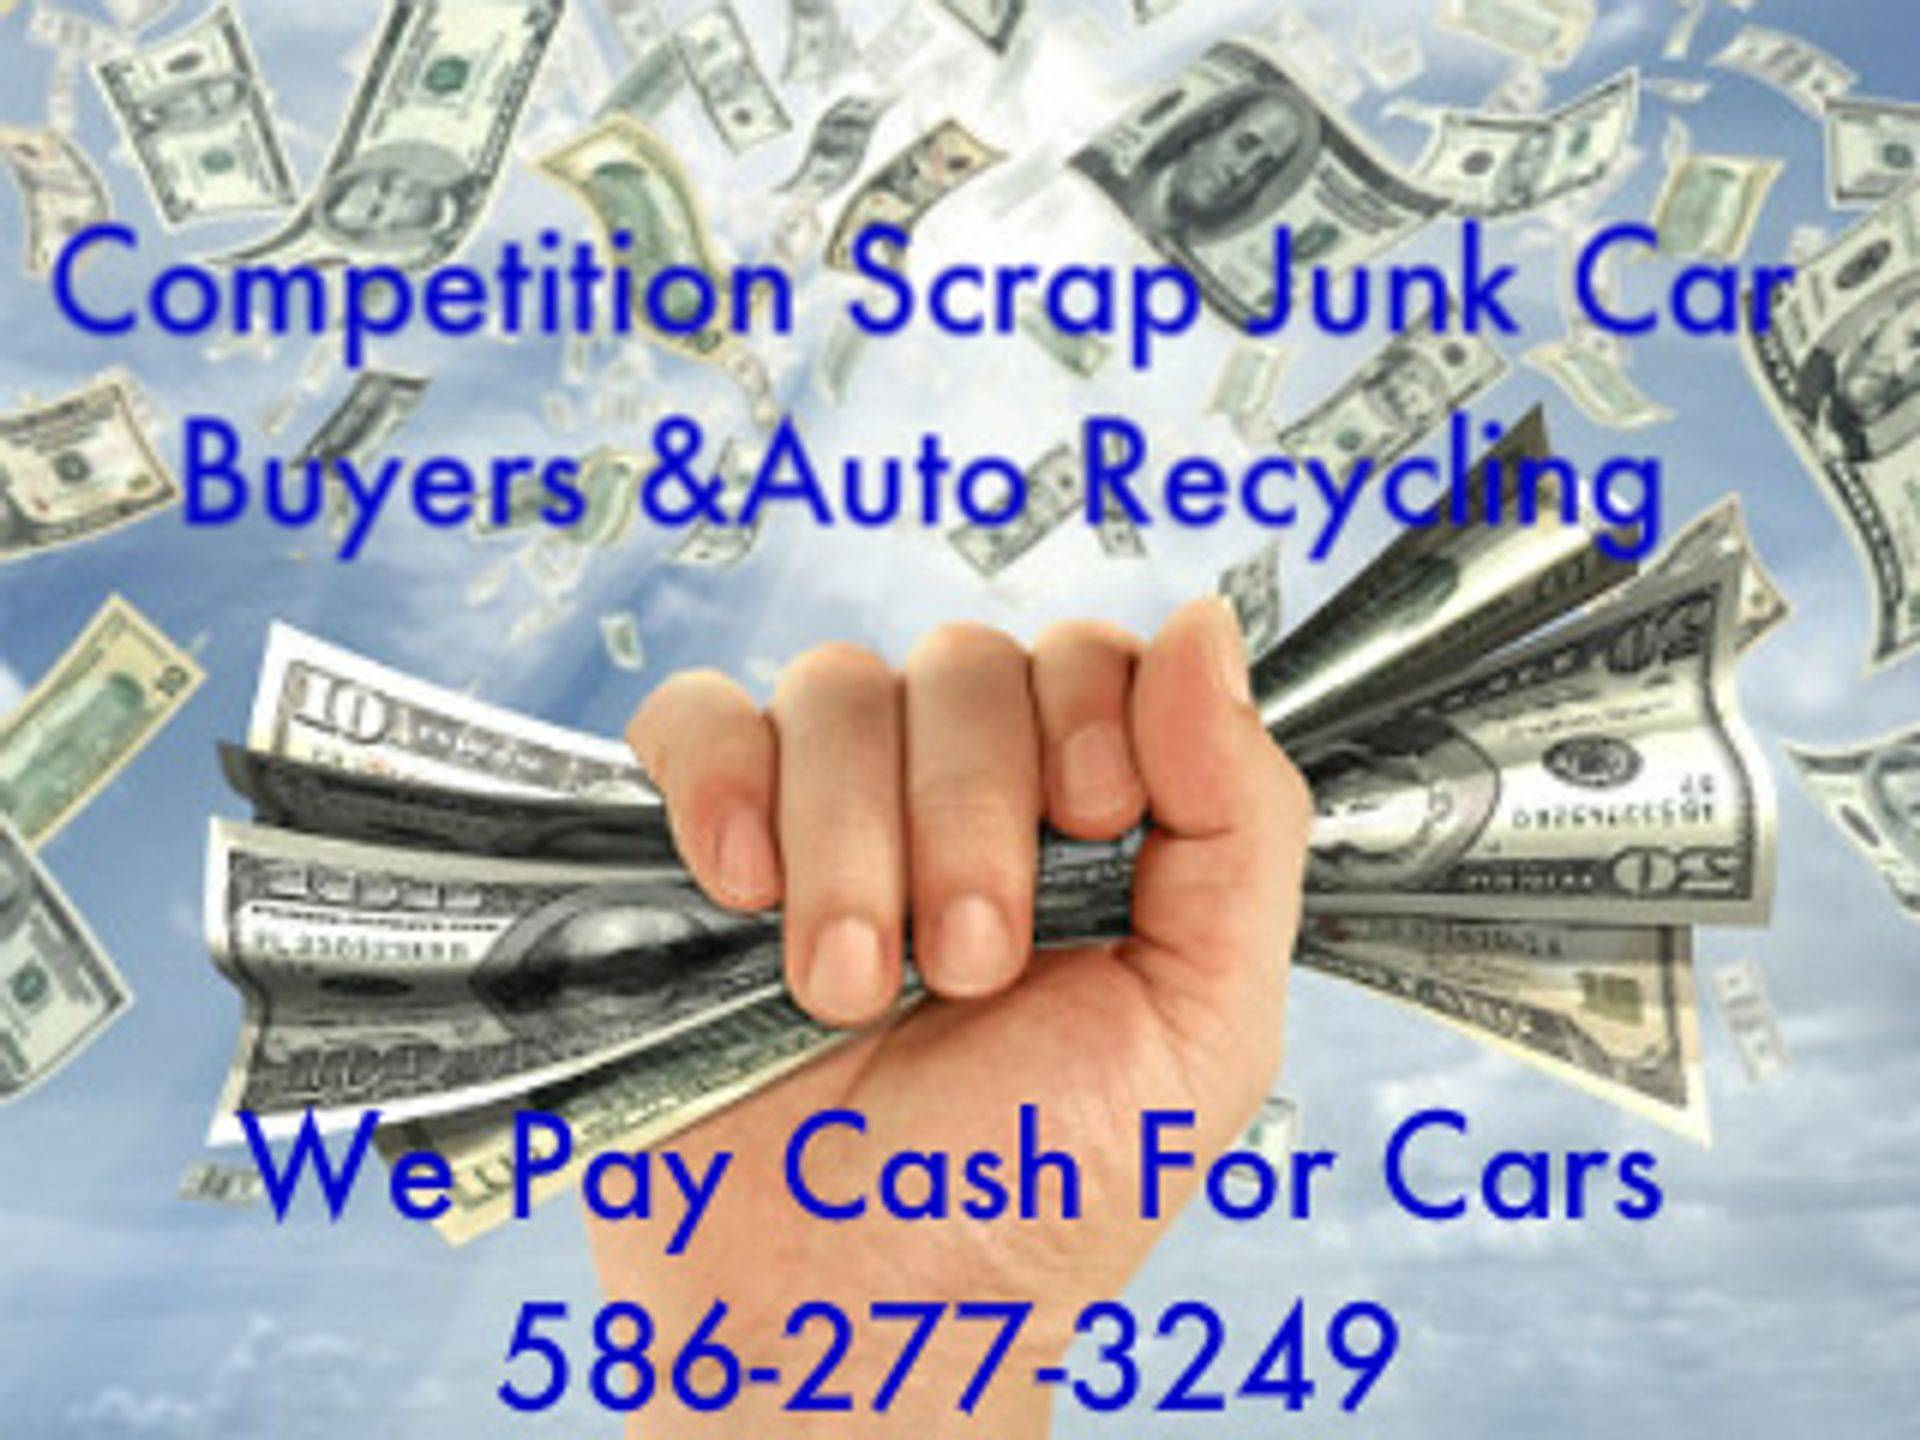 We pay the most cash for your junk car in48015,48047,48038,48021,48045,48042,48044,48043,48046,48047,48096, 48062,48066,48080,48081,48082,48310,   48311,48312,48313,48314,48088,48089,48090,48091,48092,48093,48397,48094,48095,48315,48316,48317,48318,48009,48012,48301,48302,48303,48304,48017,48331,48332,48334,48220,48030,48007,48070,48071, 48033